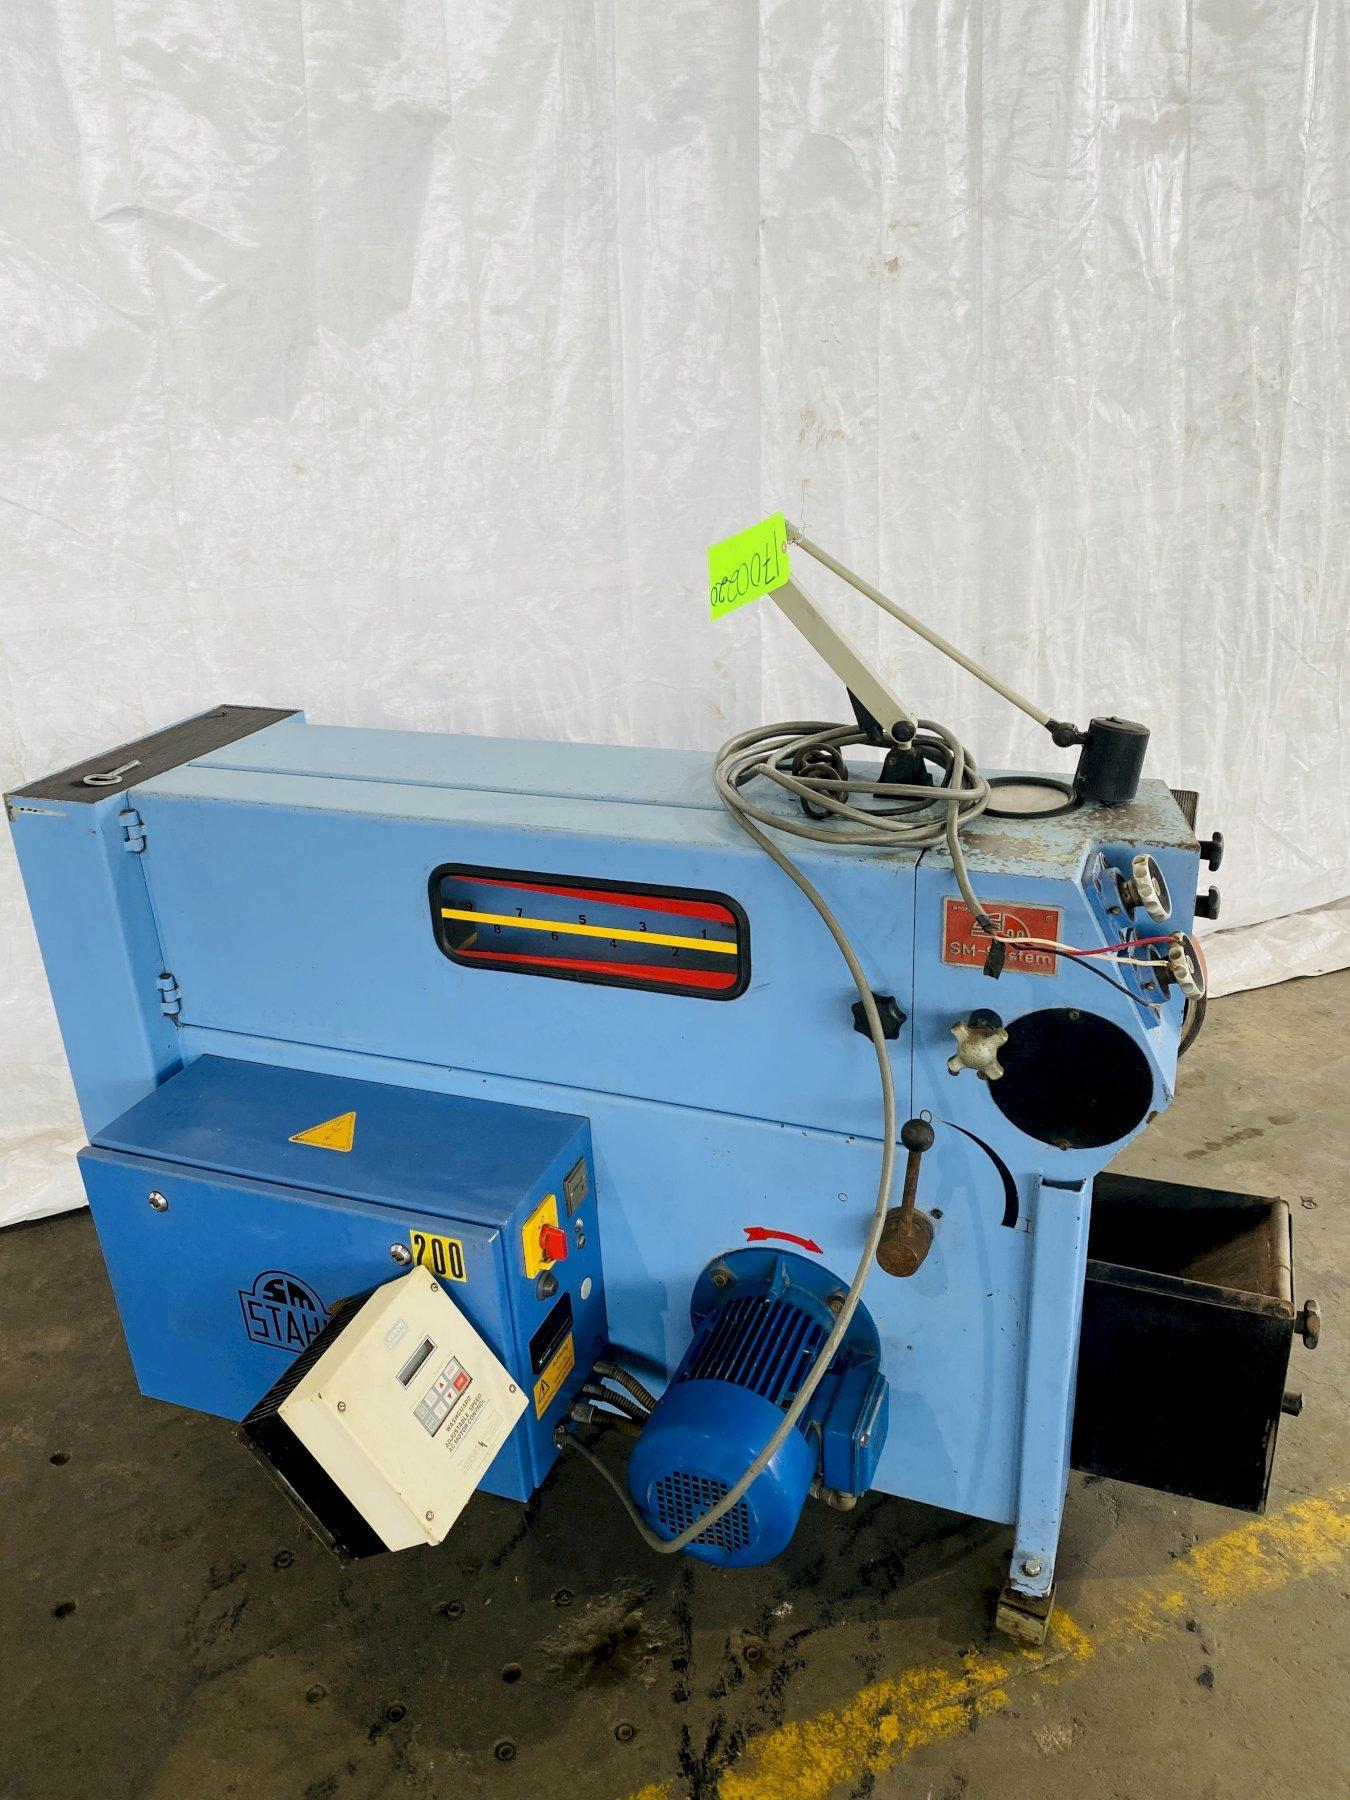 "3"" STAHL SMF-350 BELT SANDER/ POLISHER. STOCK # 0508220"